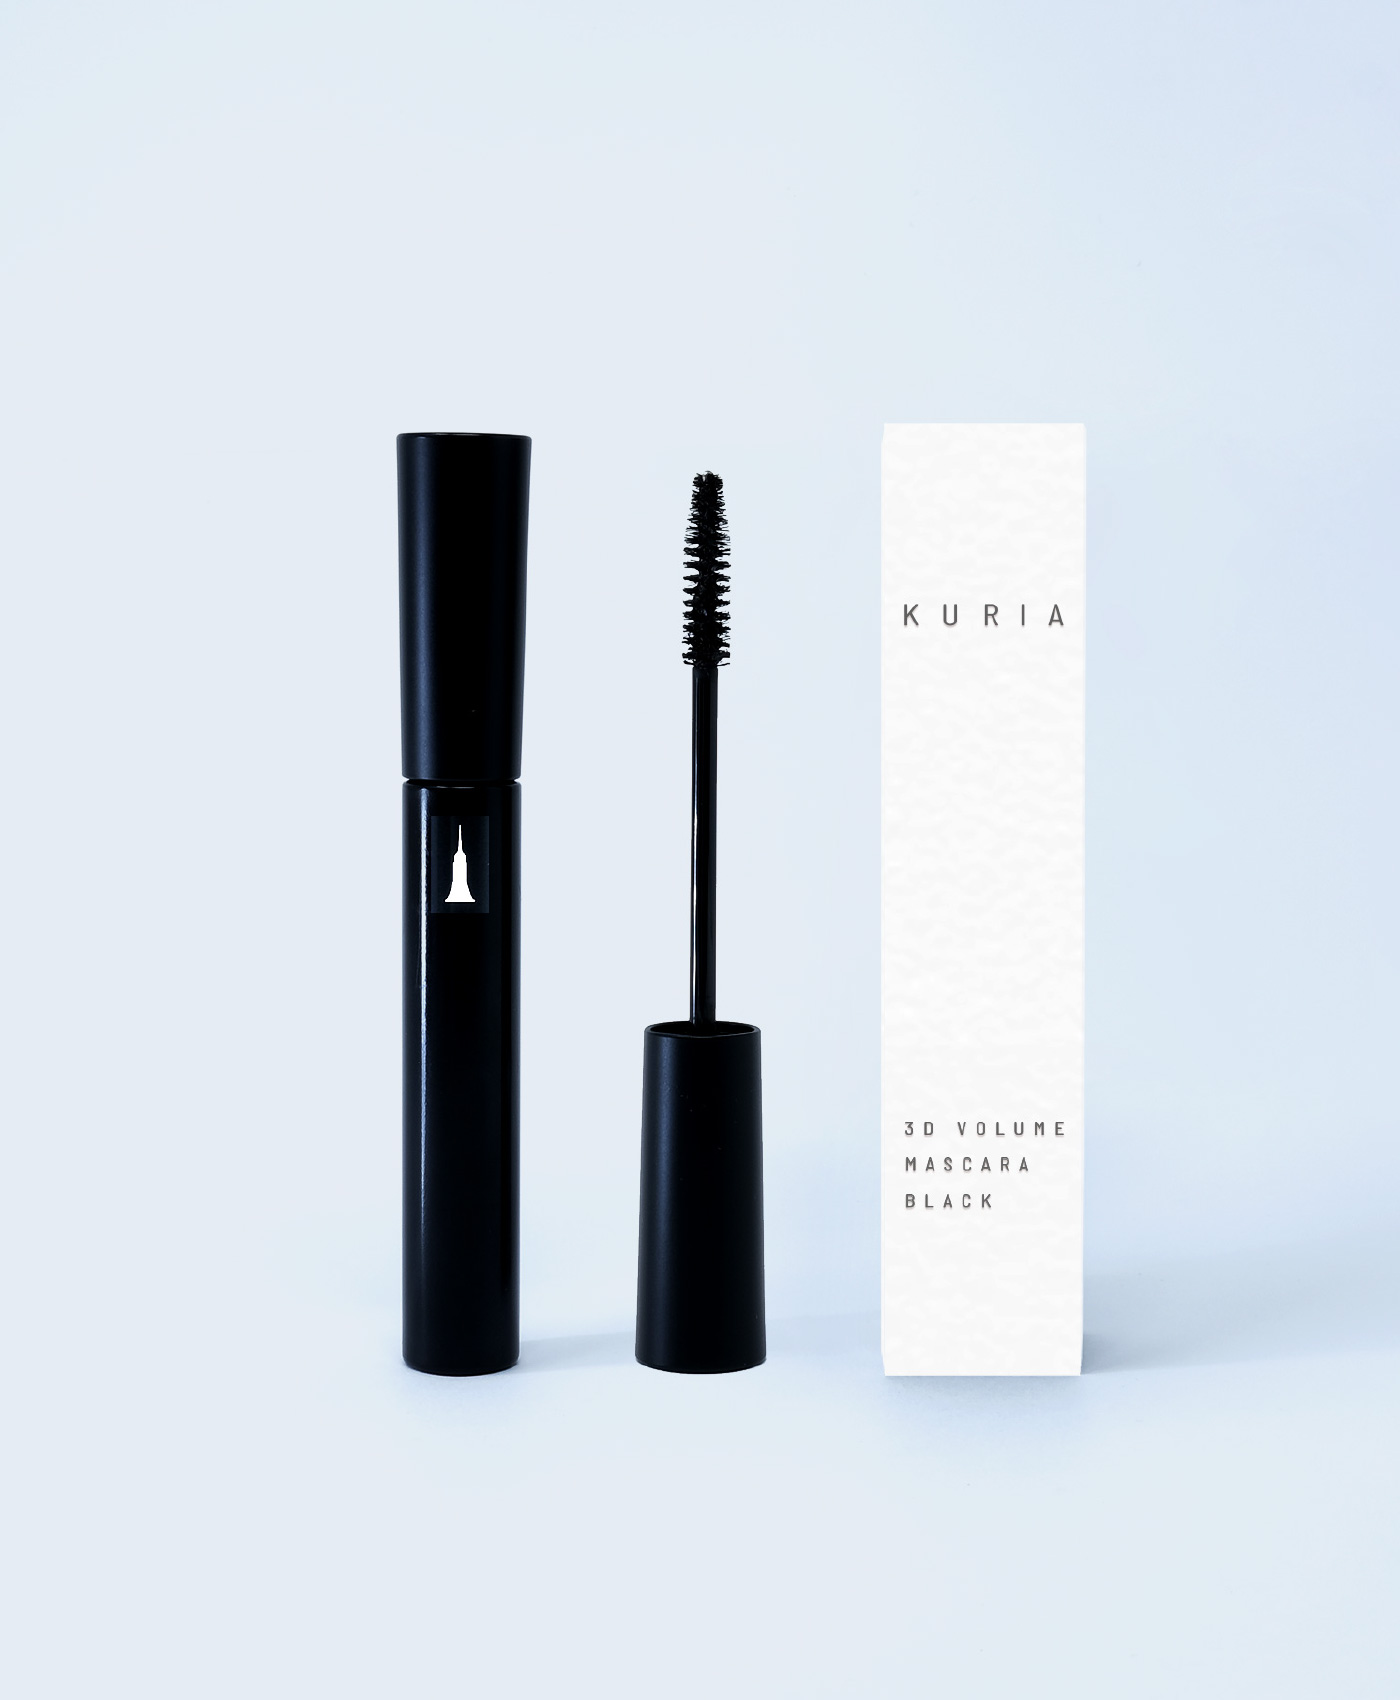 KURIA 3D VOLUME MASCARA